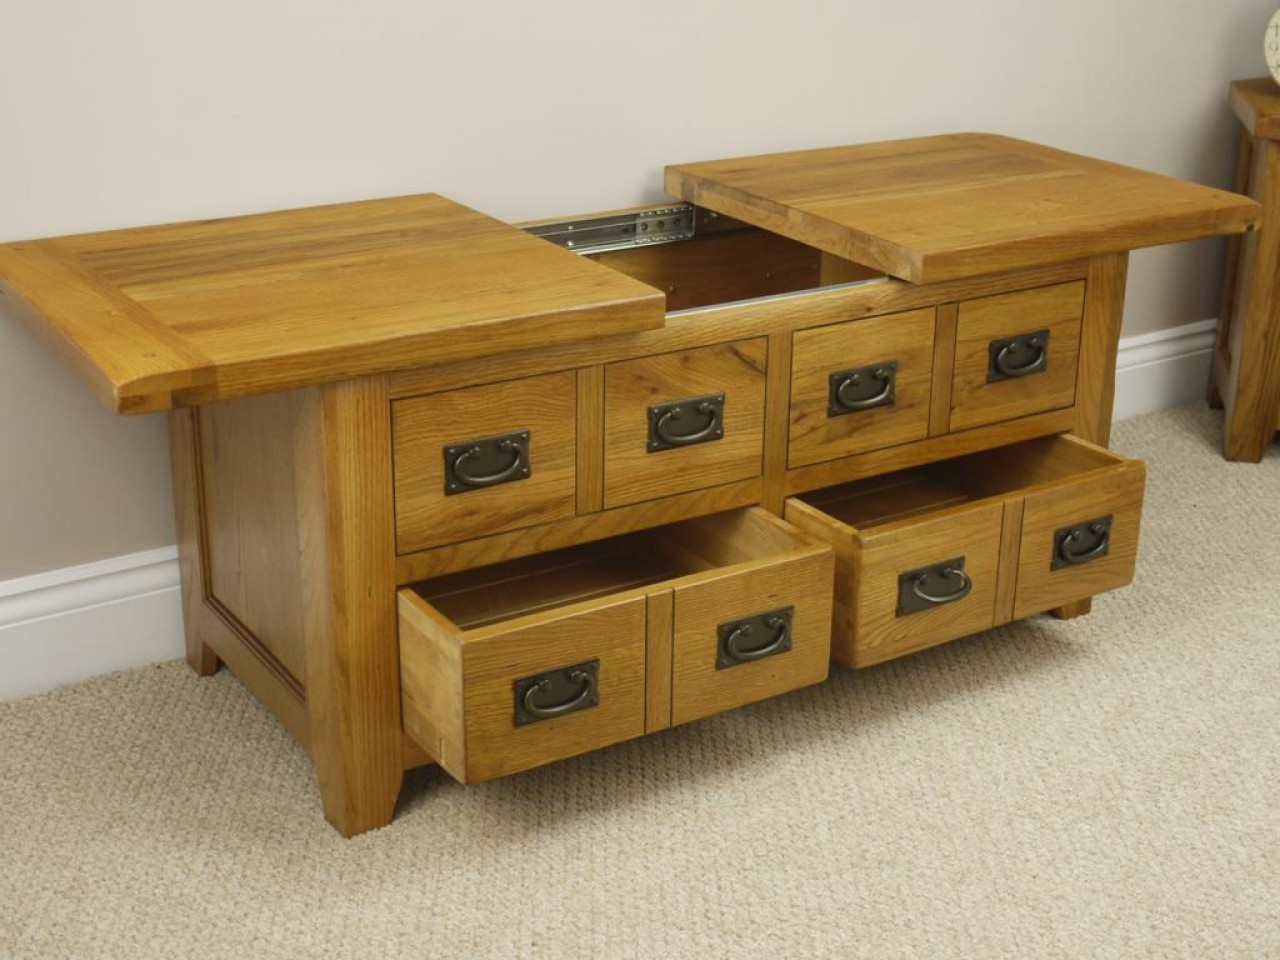 Coffee Table Storage Drawers Crosley Coffee Table With Storage Drawers By Oj Commerce 229 00